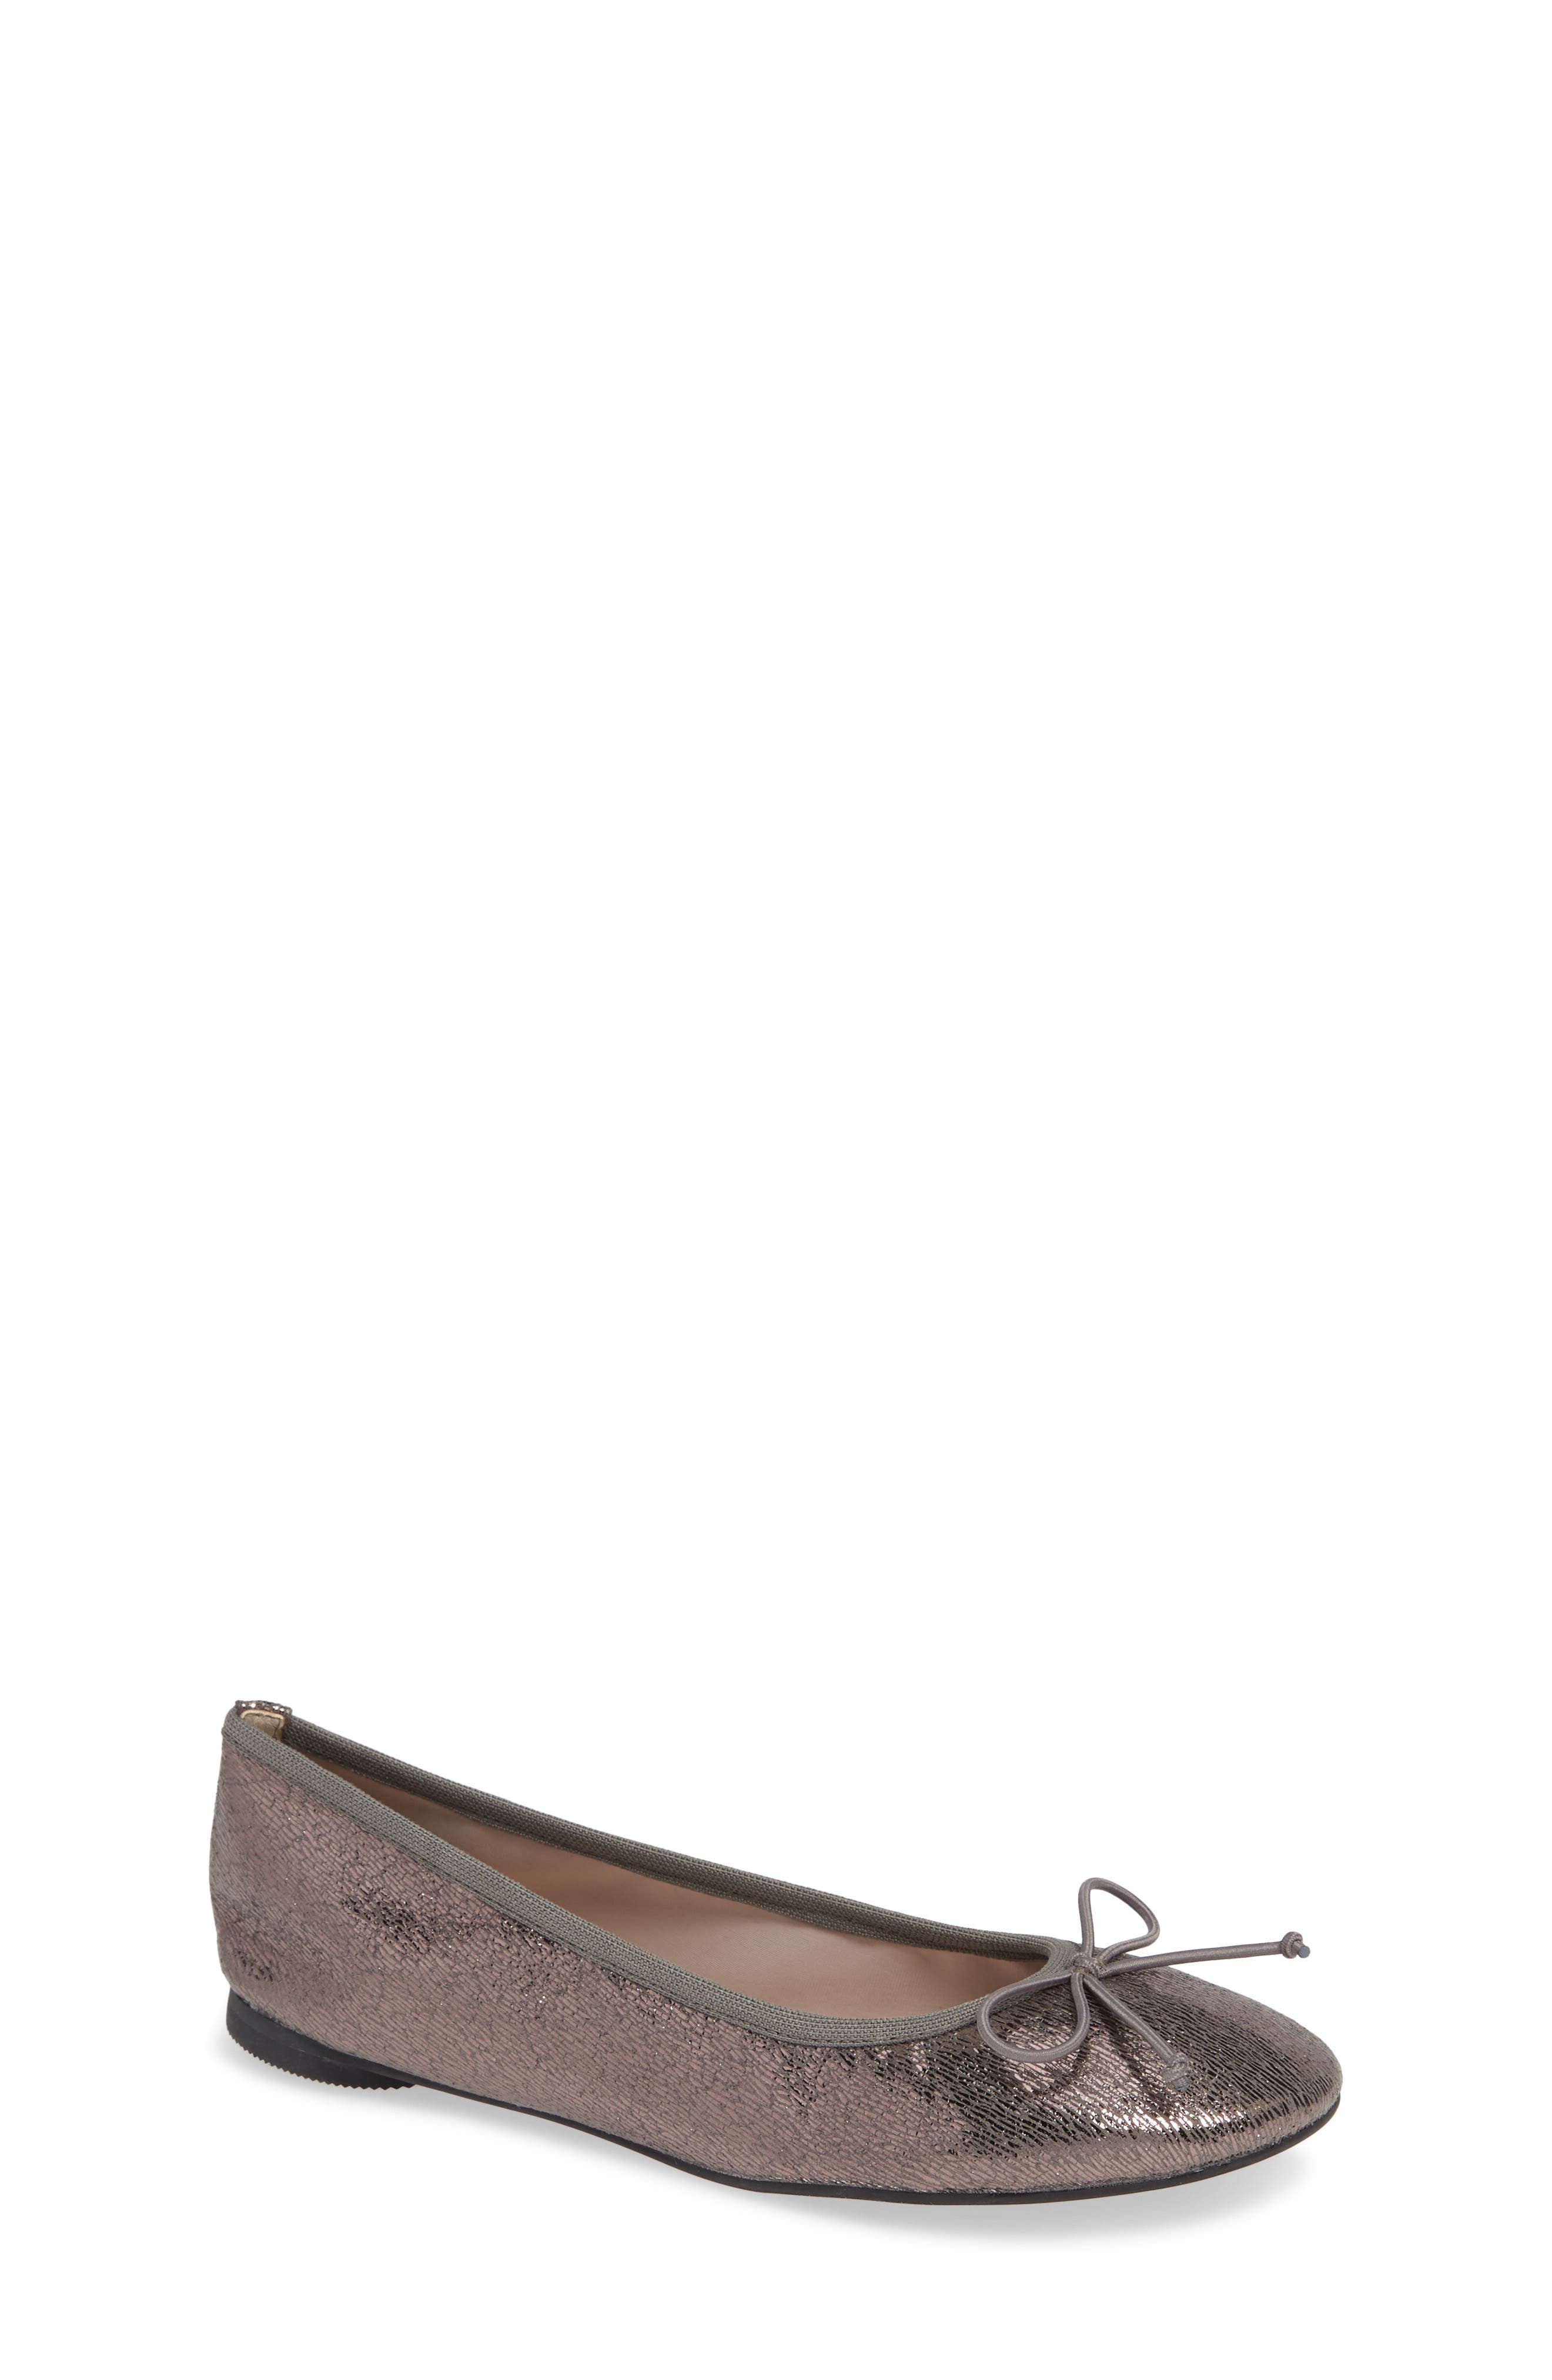 Bella Ballet Flat,                             Main thumbnail 1, color,                             PEWTER SHIMMER FAUX LEATHER